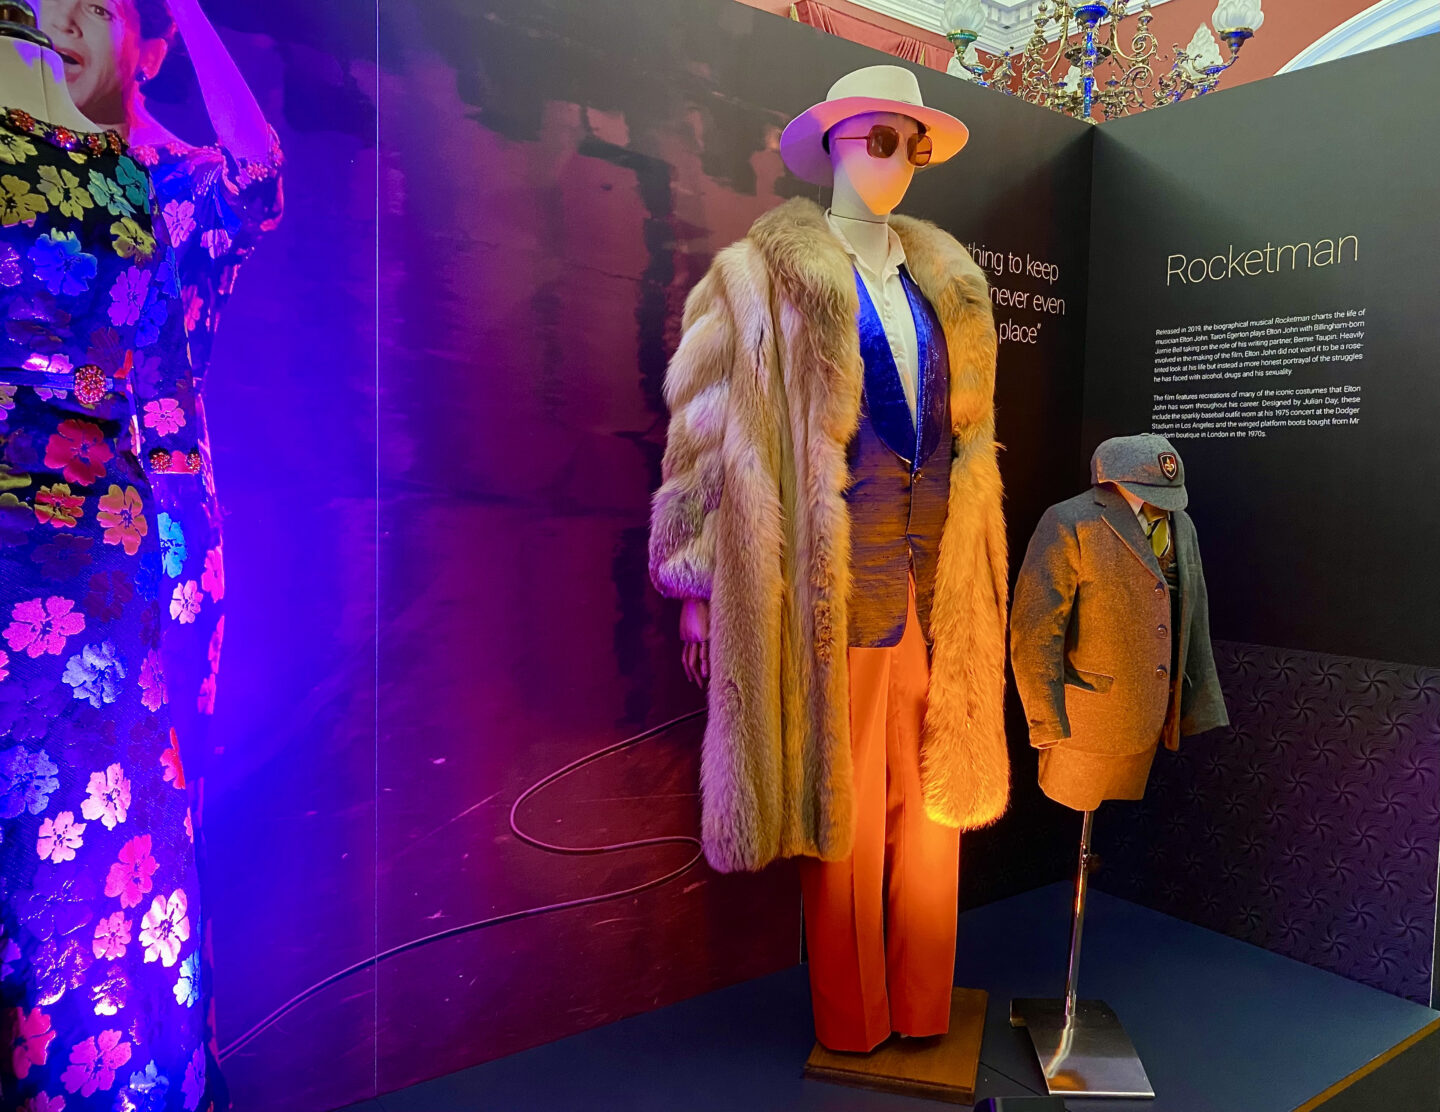 Flamboyent fur coat and hat outfit from Rocket Man